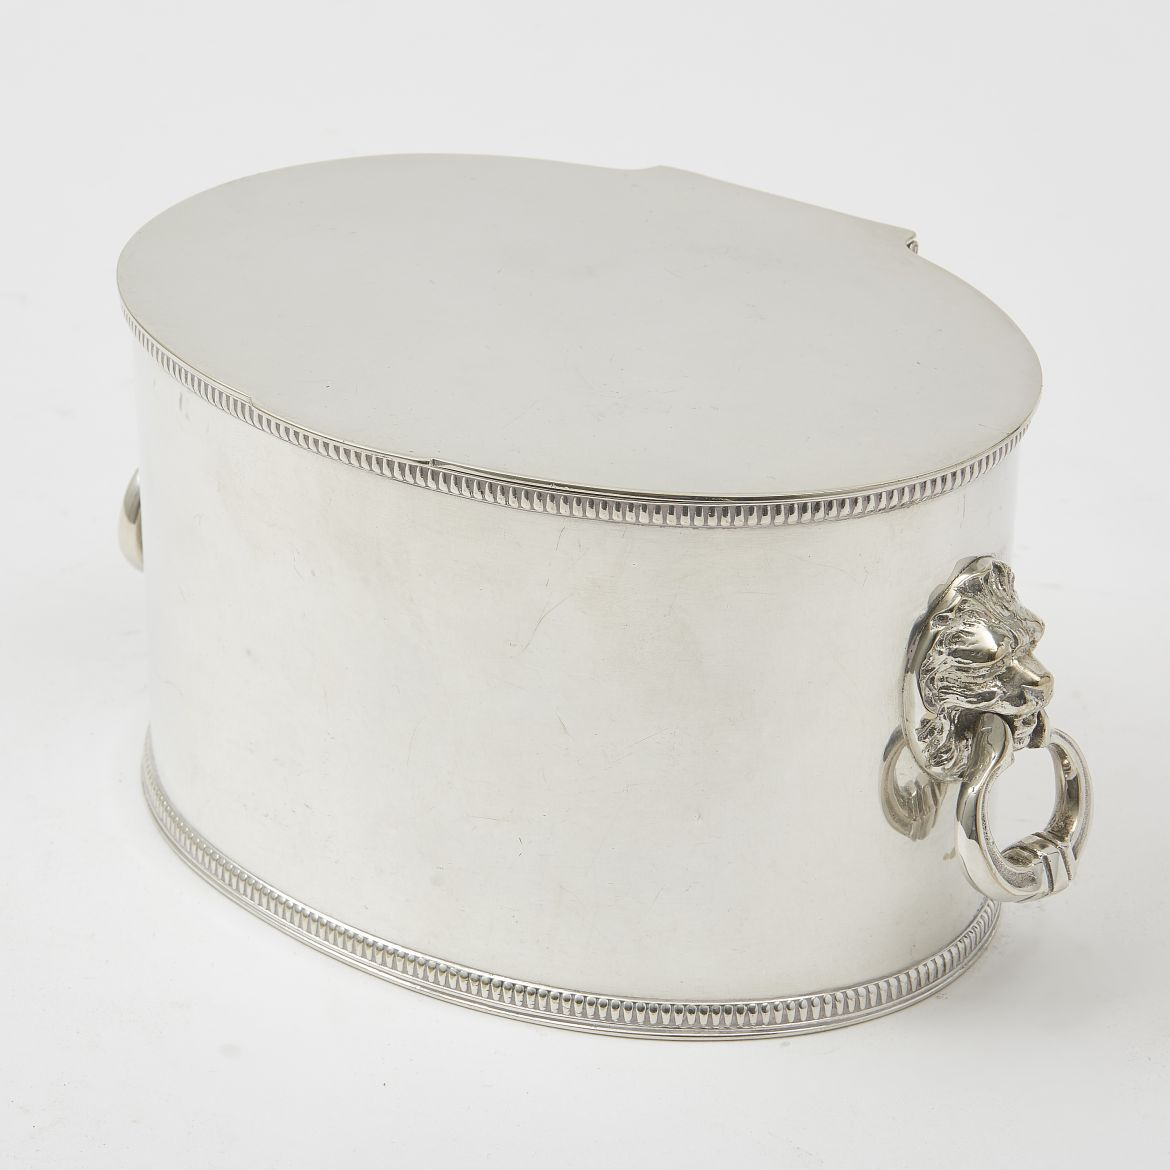 Edwardian Silver Plate Box With Lion Handles